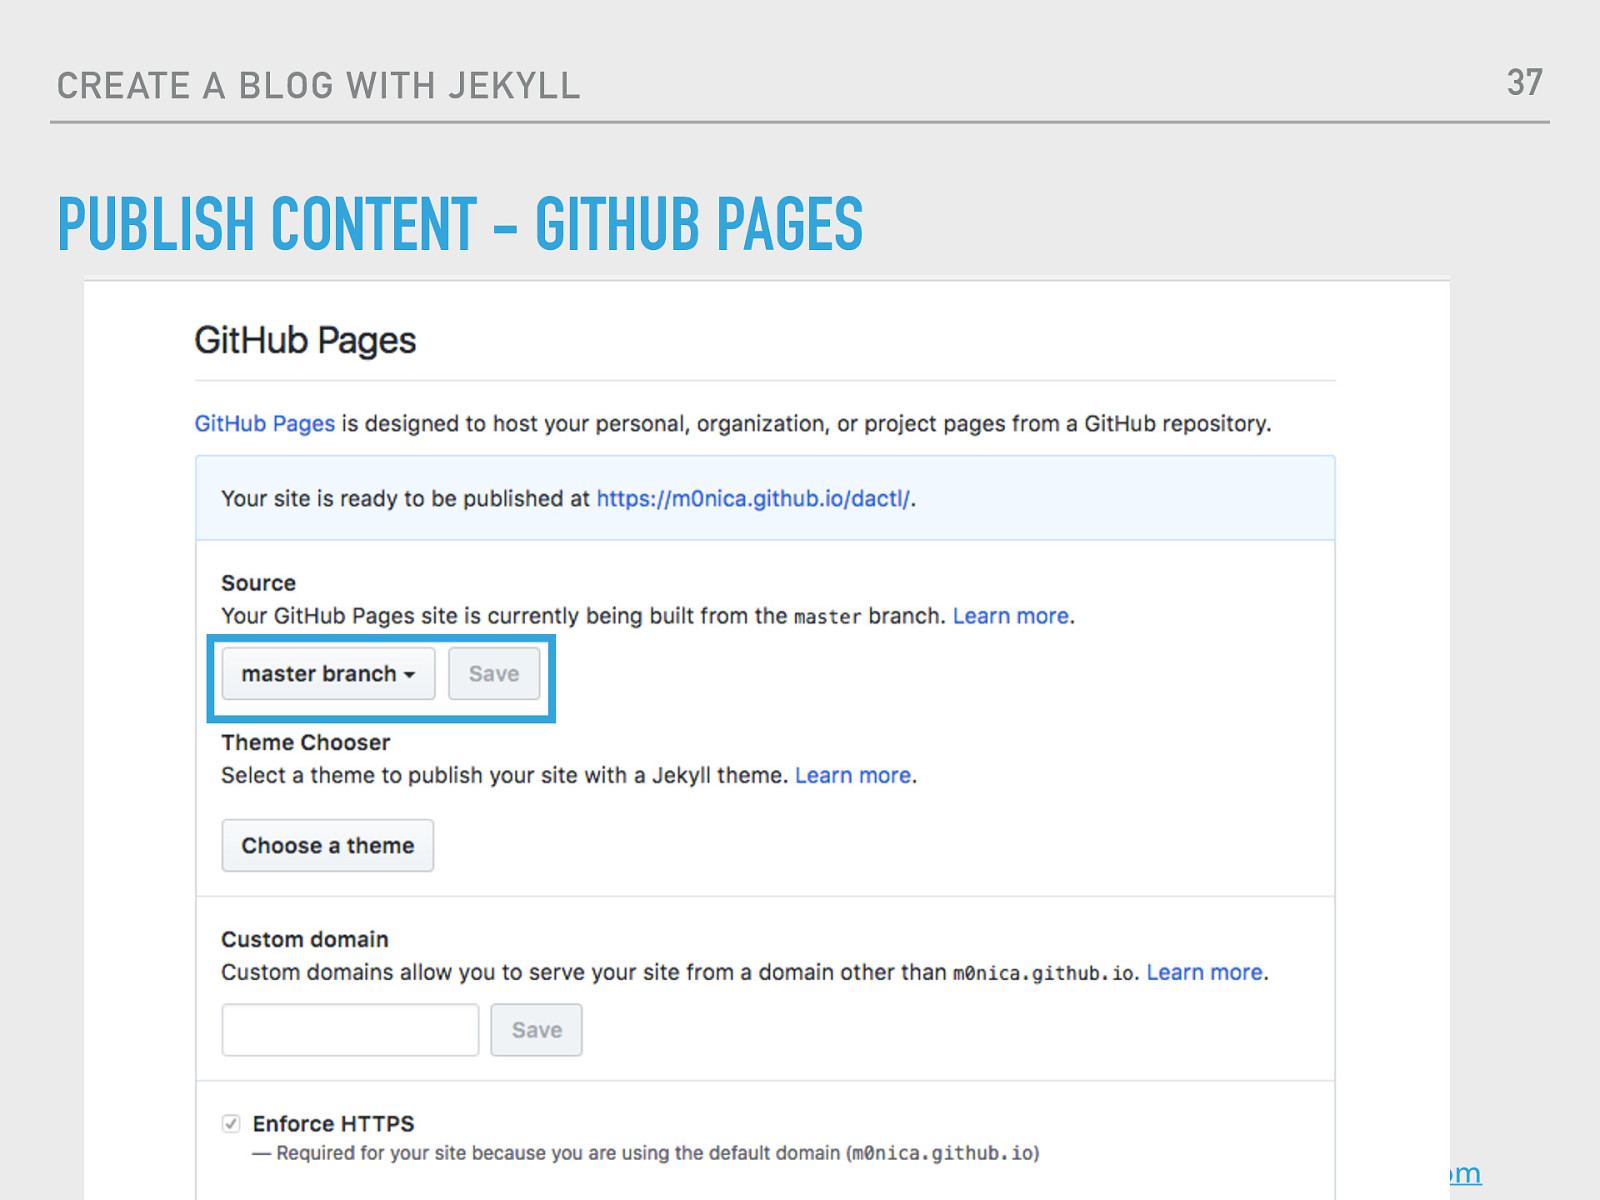 Technical Blogging with Jekyll